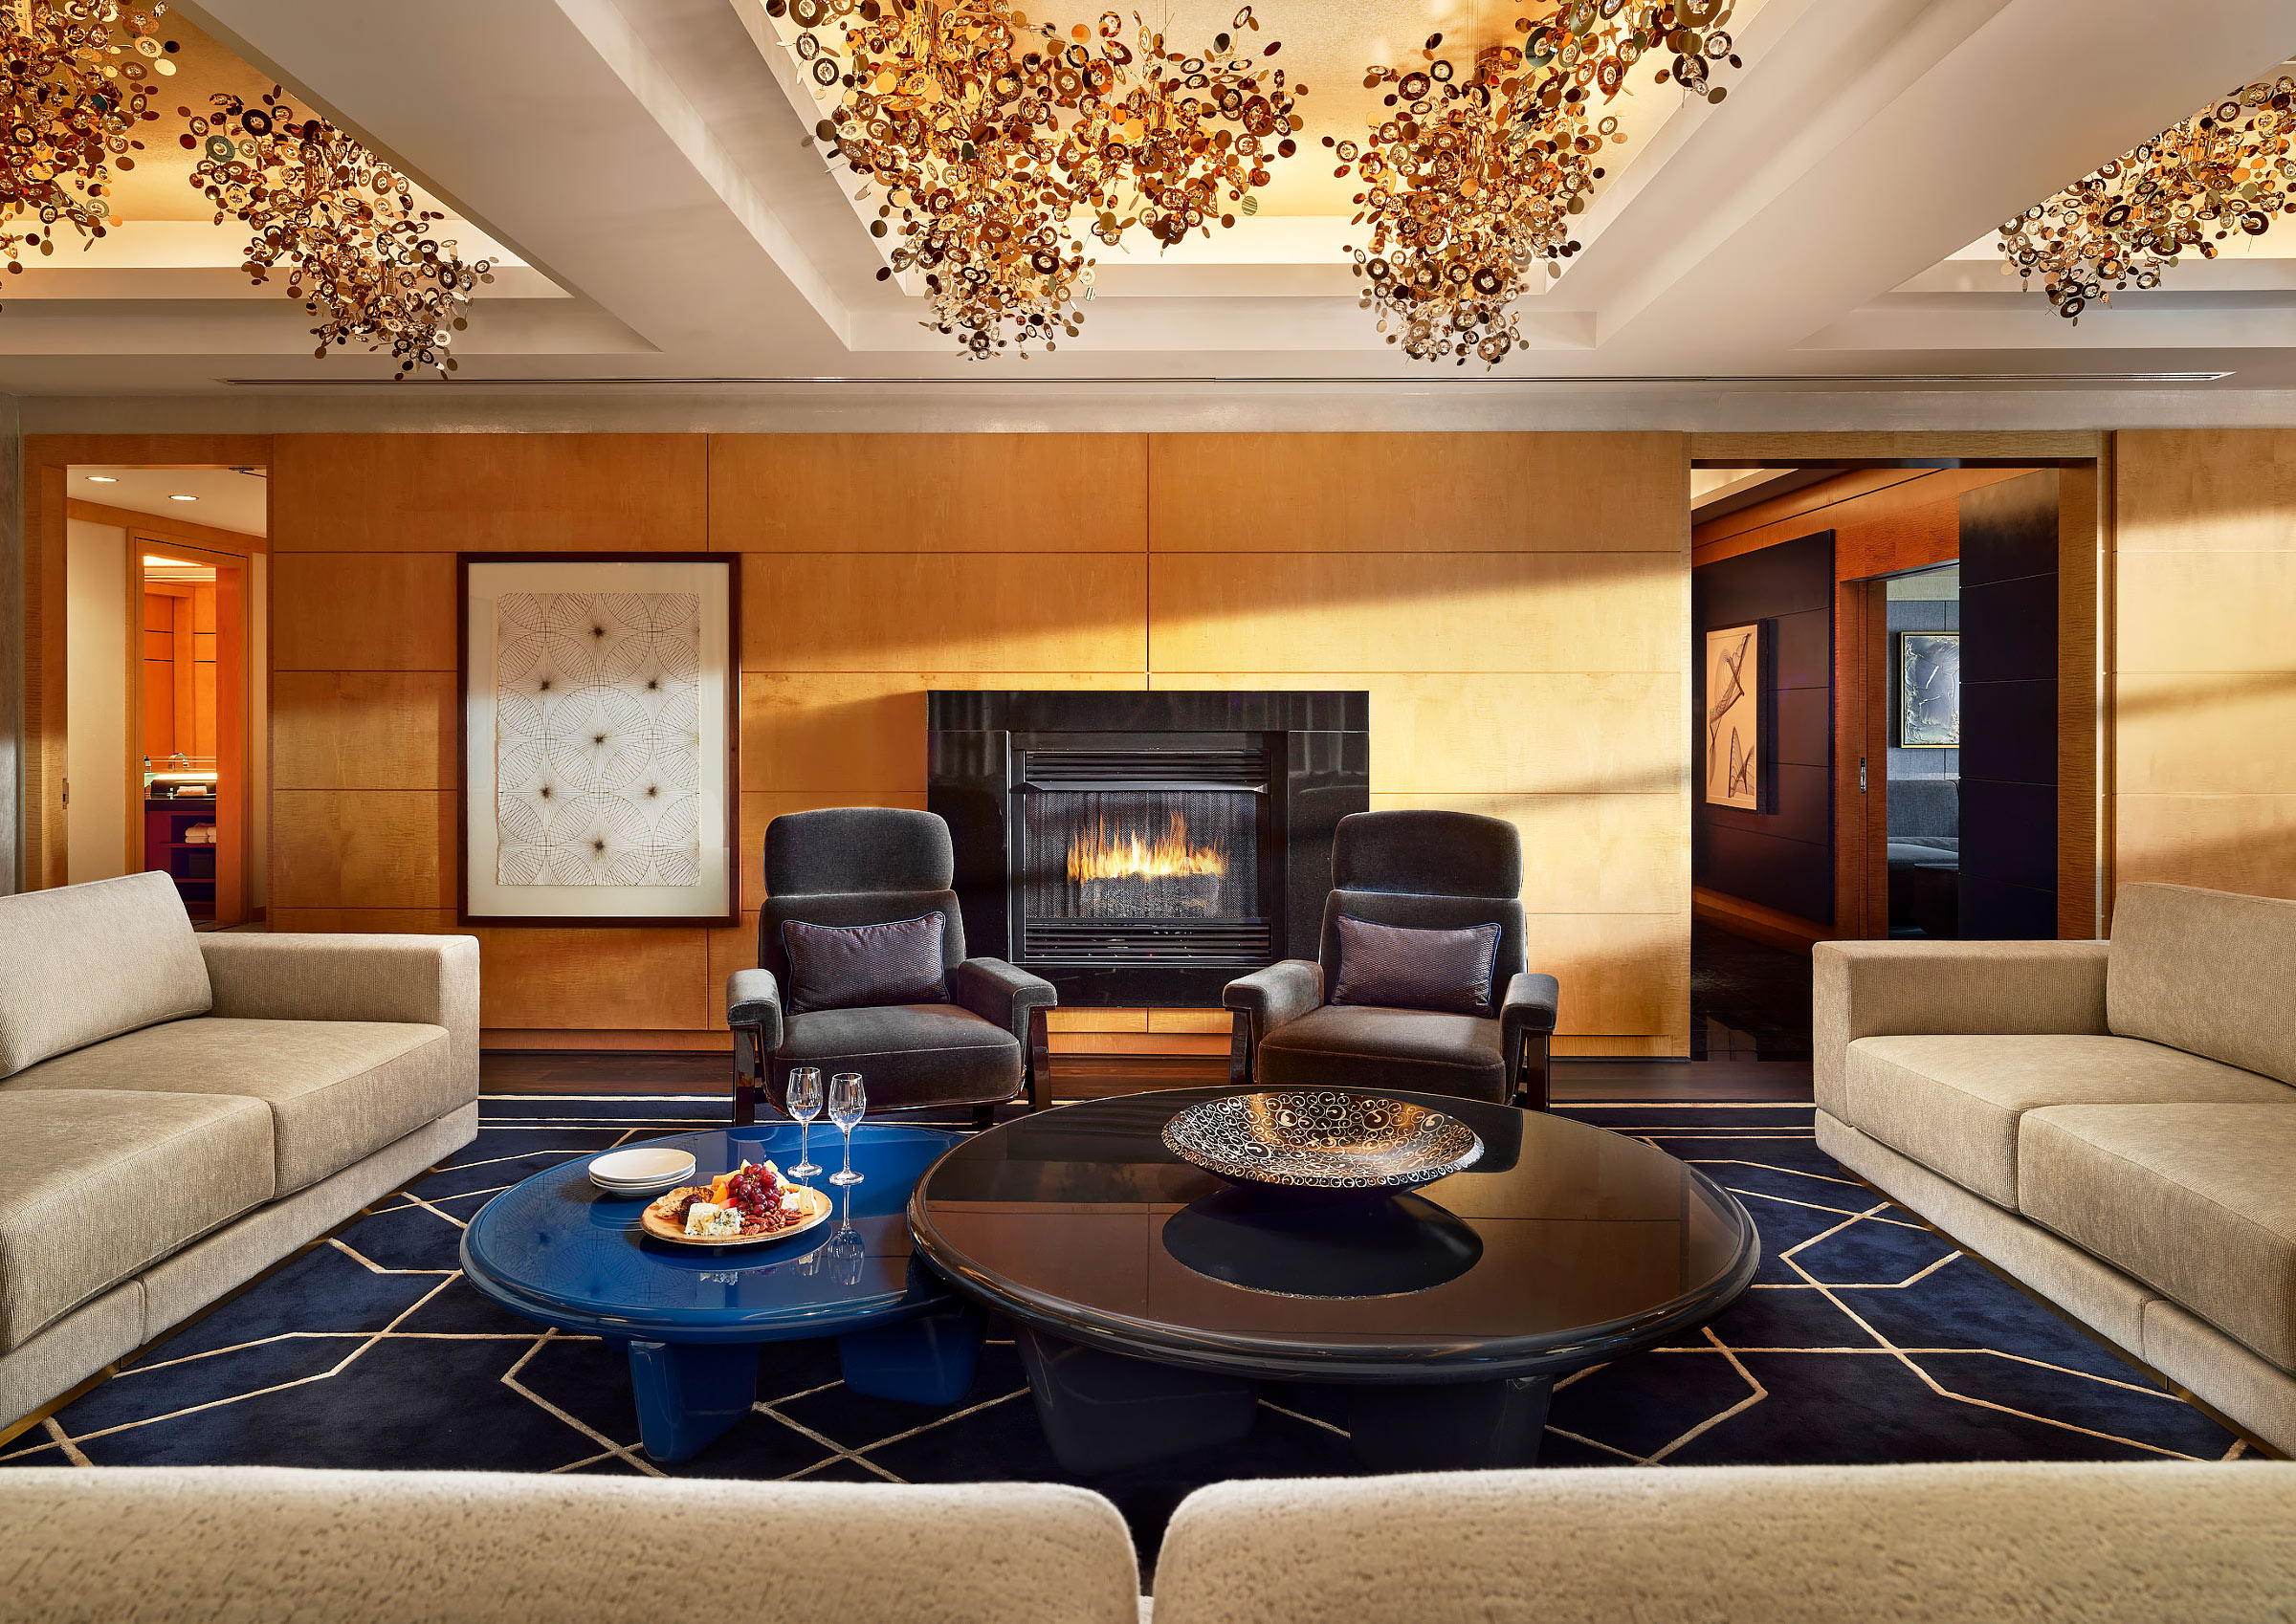 Mandarin-Oriental-Boston-Royal-Suite-Living-Fireplace